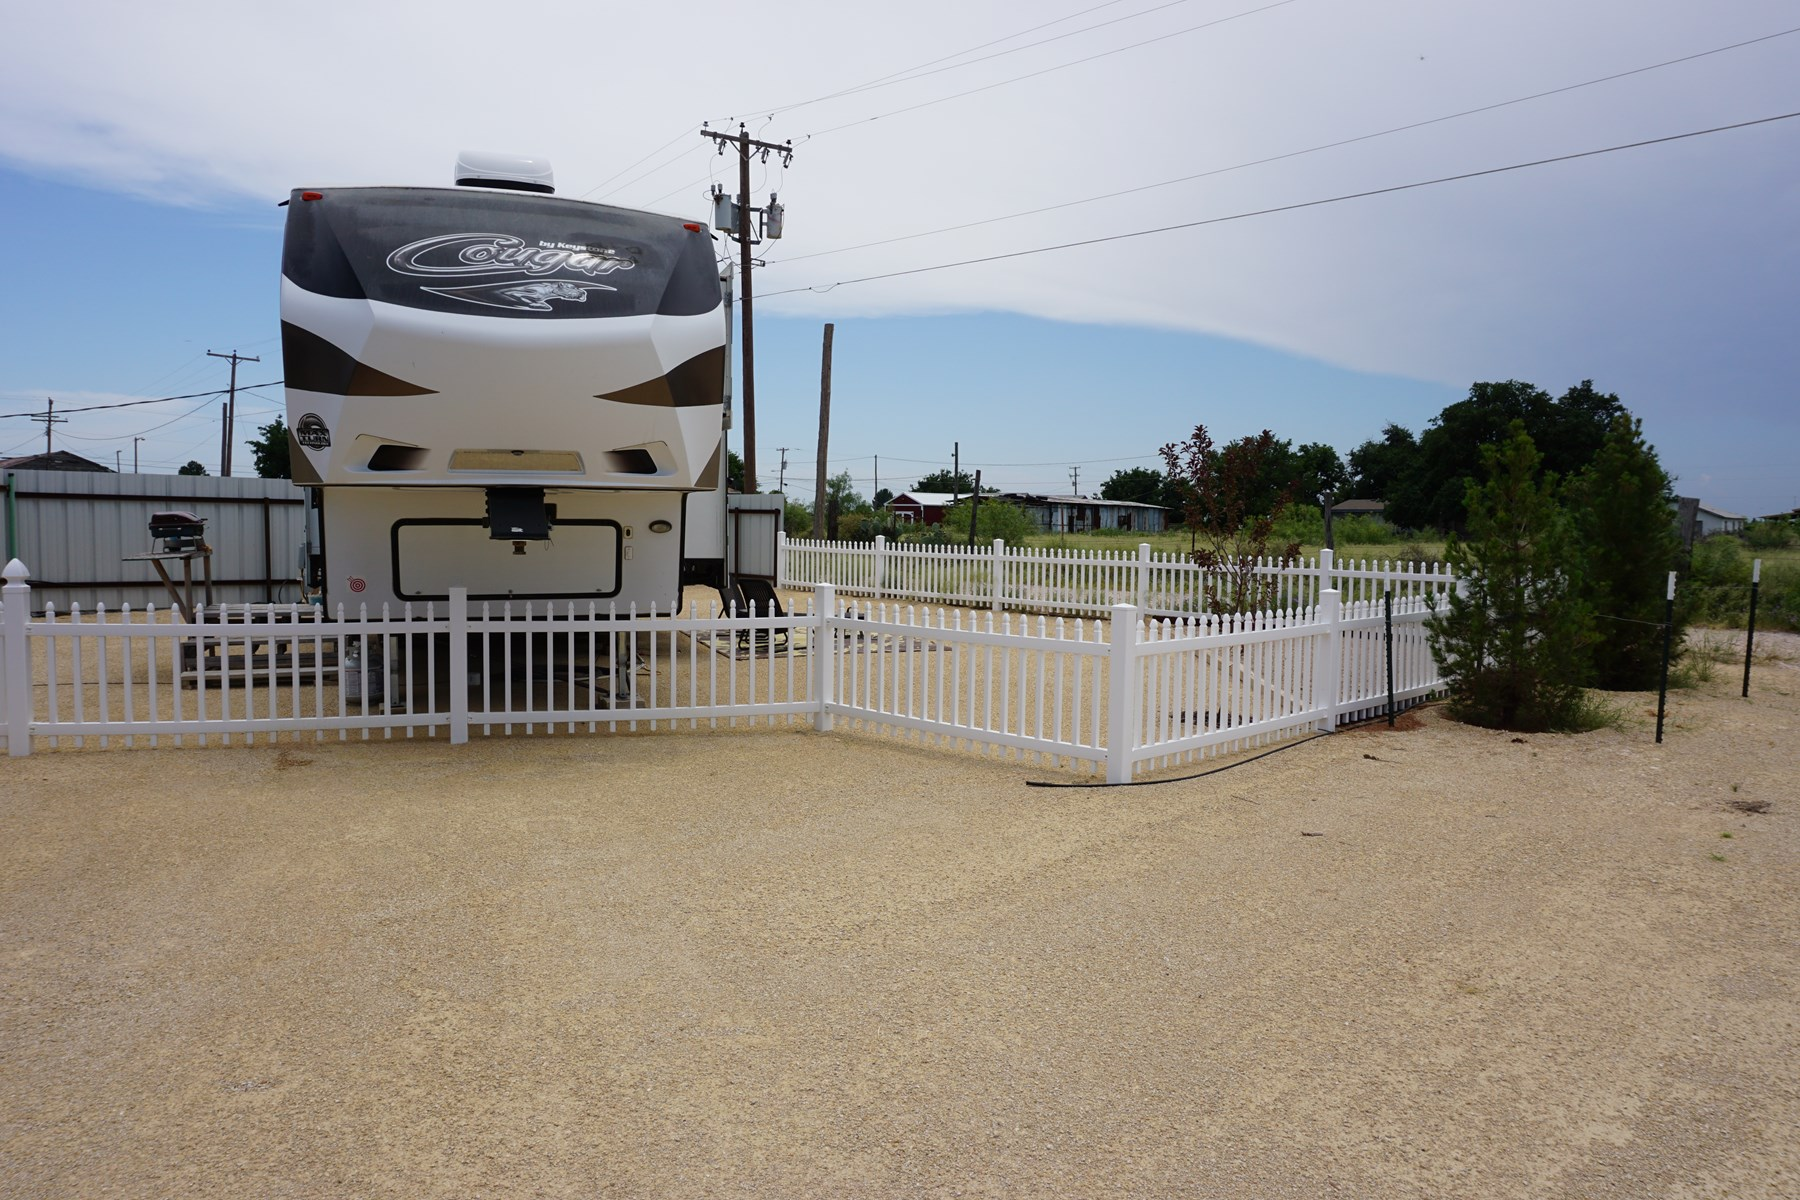 OILRIDGE RV PARK FOR SALE IN GRANDFALLS, TEXAS!